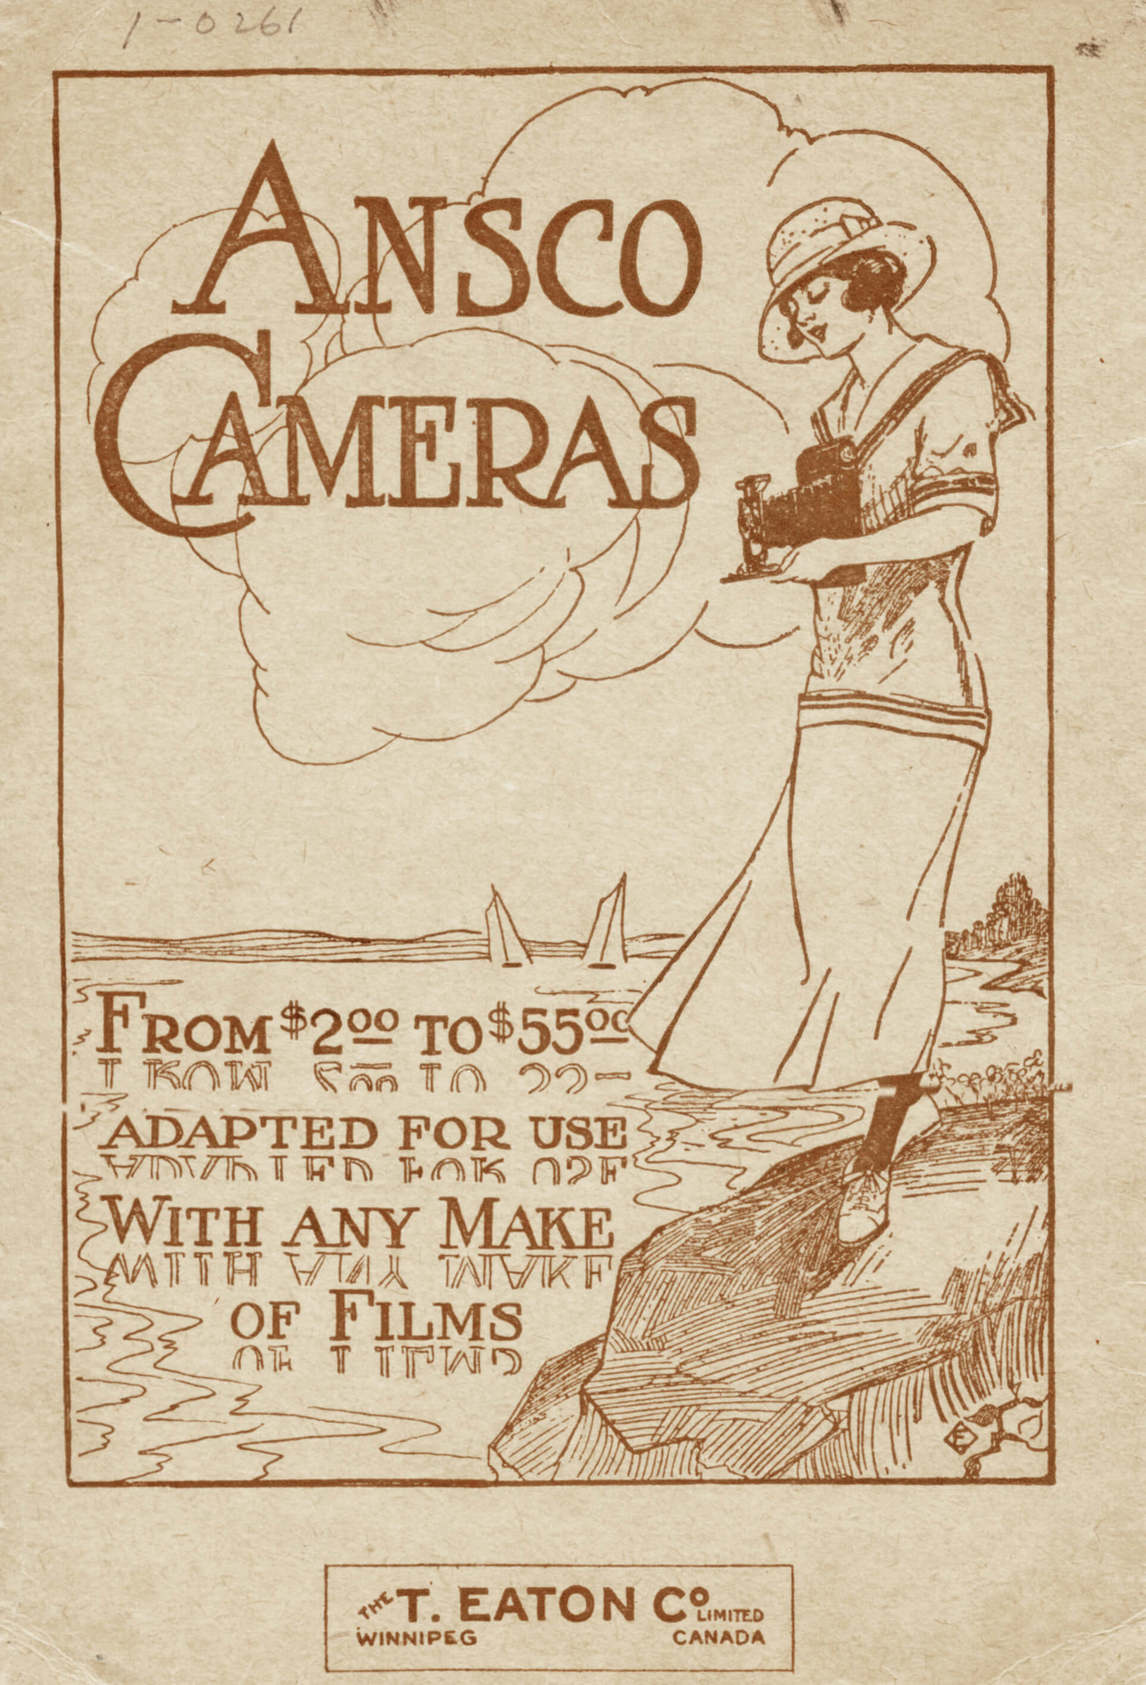 Art Canada Institute, T. Eaton Company Limited, Winnipeg, advertisement for Ansco Cameras